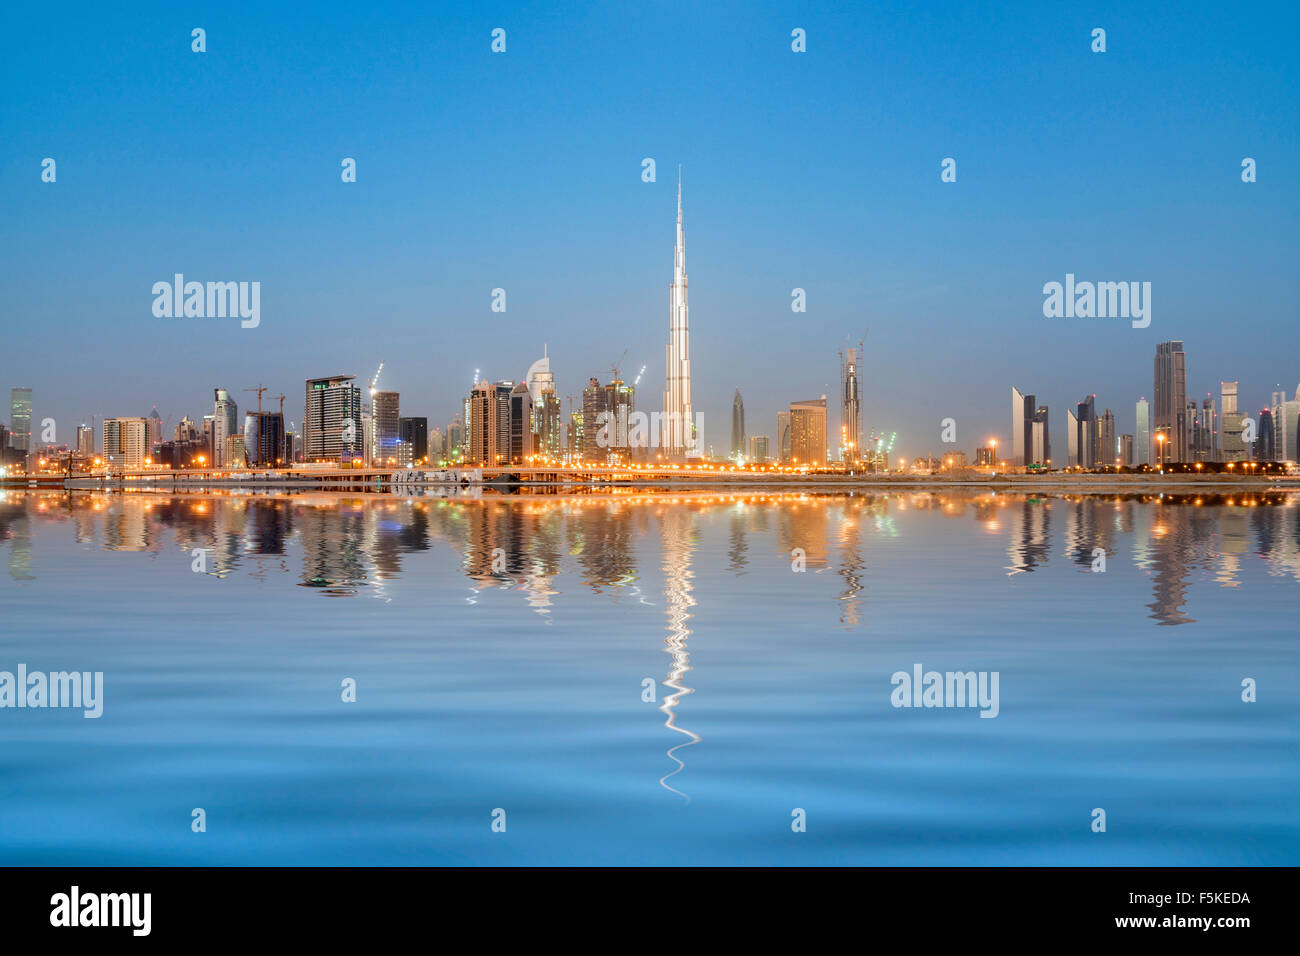 Skyline di torri si riflette nel torrente all'alba in Business Bay in Dubai Emirati Arabi Uniti Immagini Stock